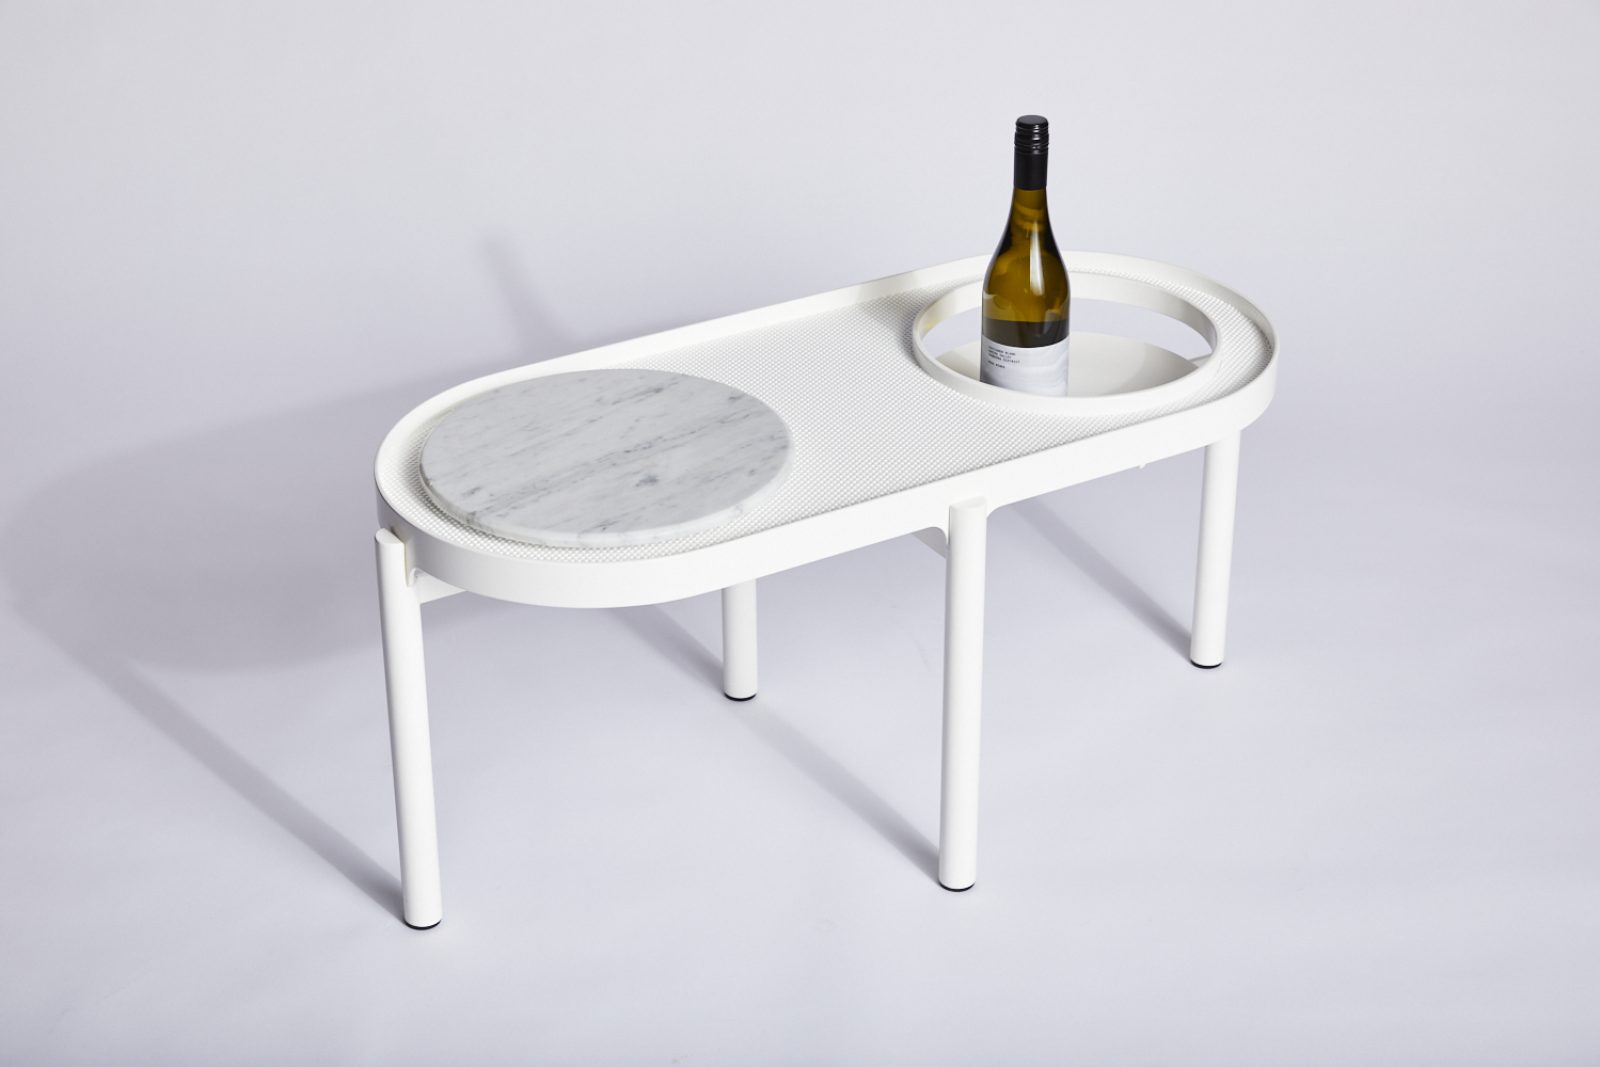 René Linssen, Sola Coffee Table, 2020. Photo: Brenton Colley.